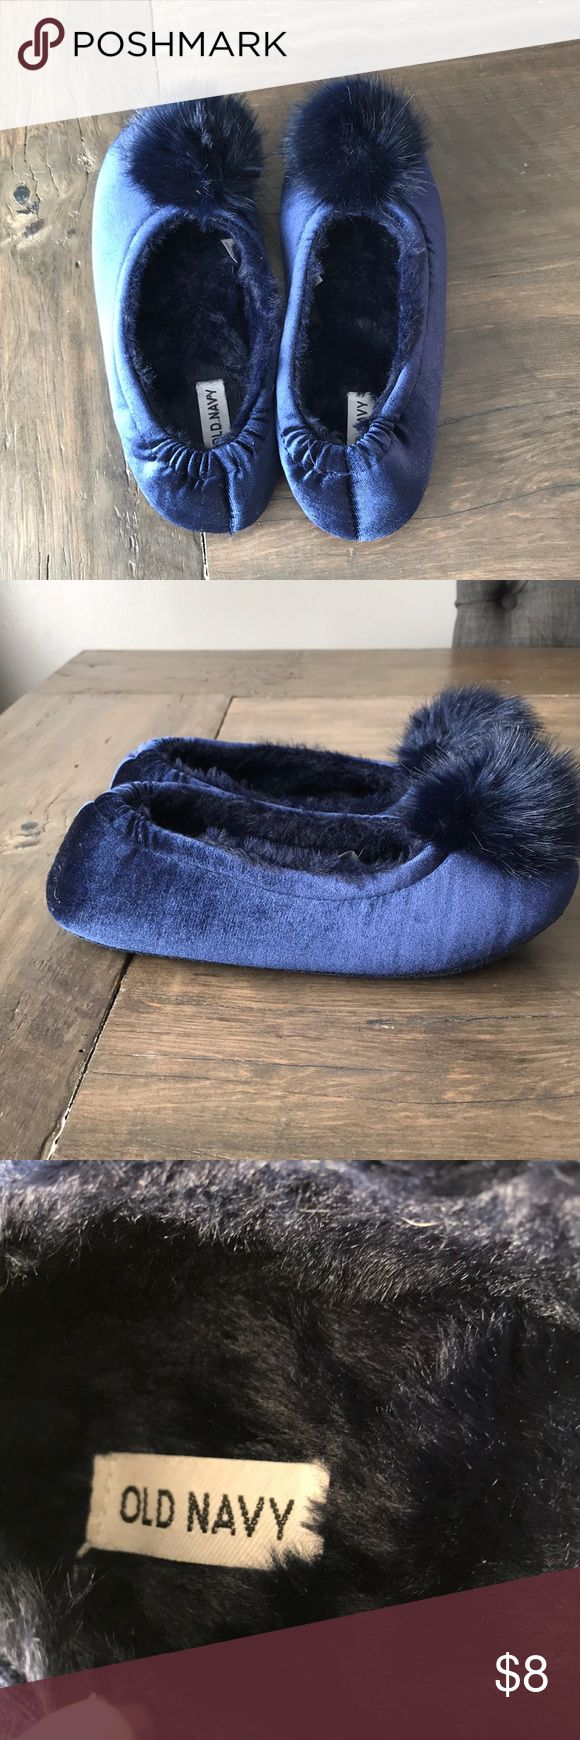 Old Navy house slippers Super cute velvet house slippers. Navy blue with fuzzy ball detail on toes. Size 9 only worn twice Old Navy Shoes Slippers